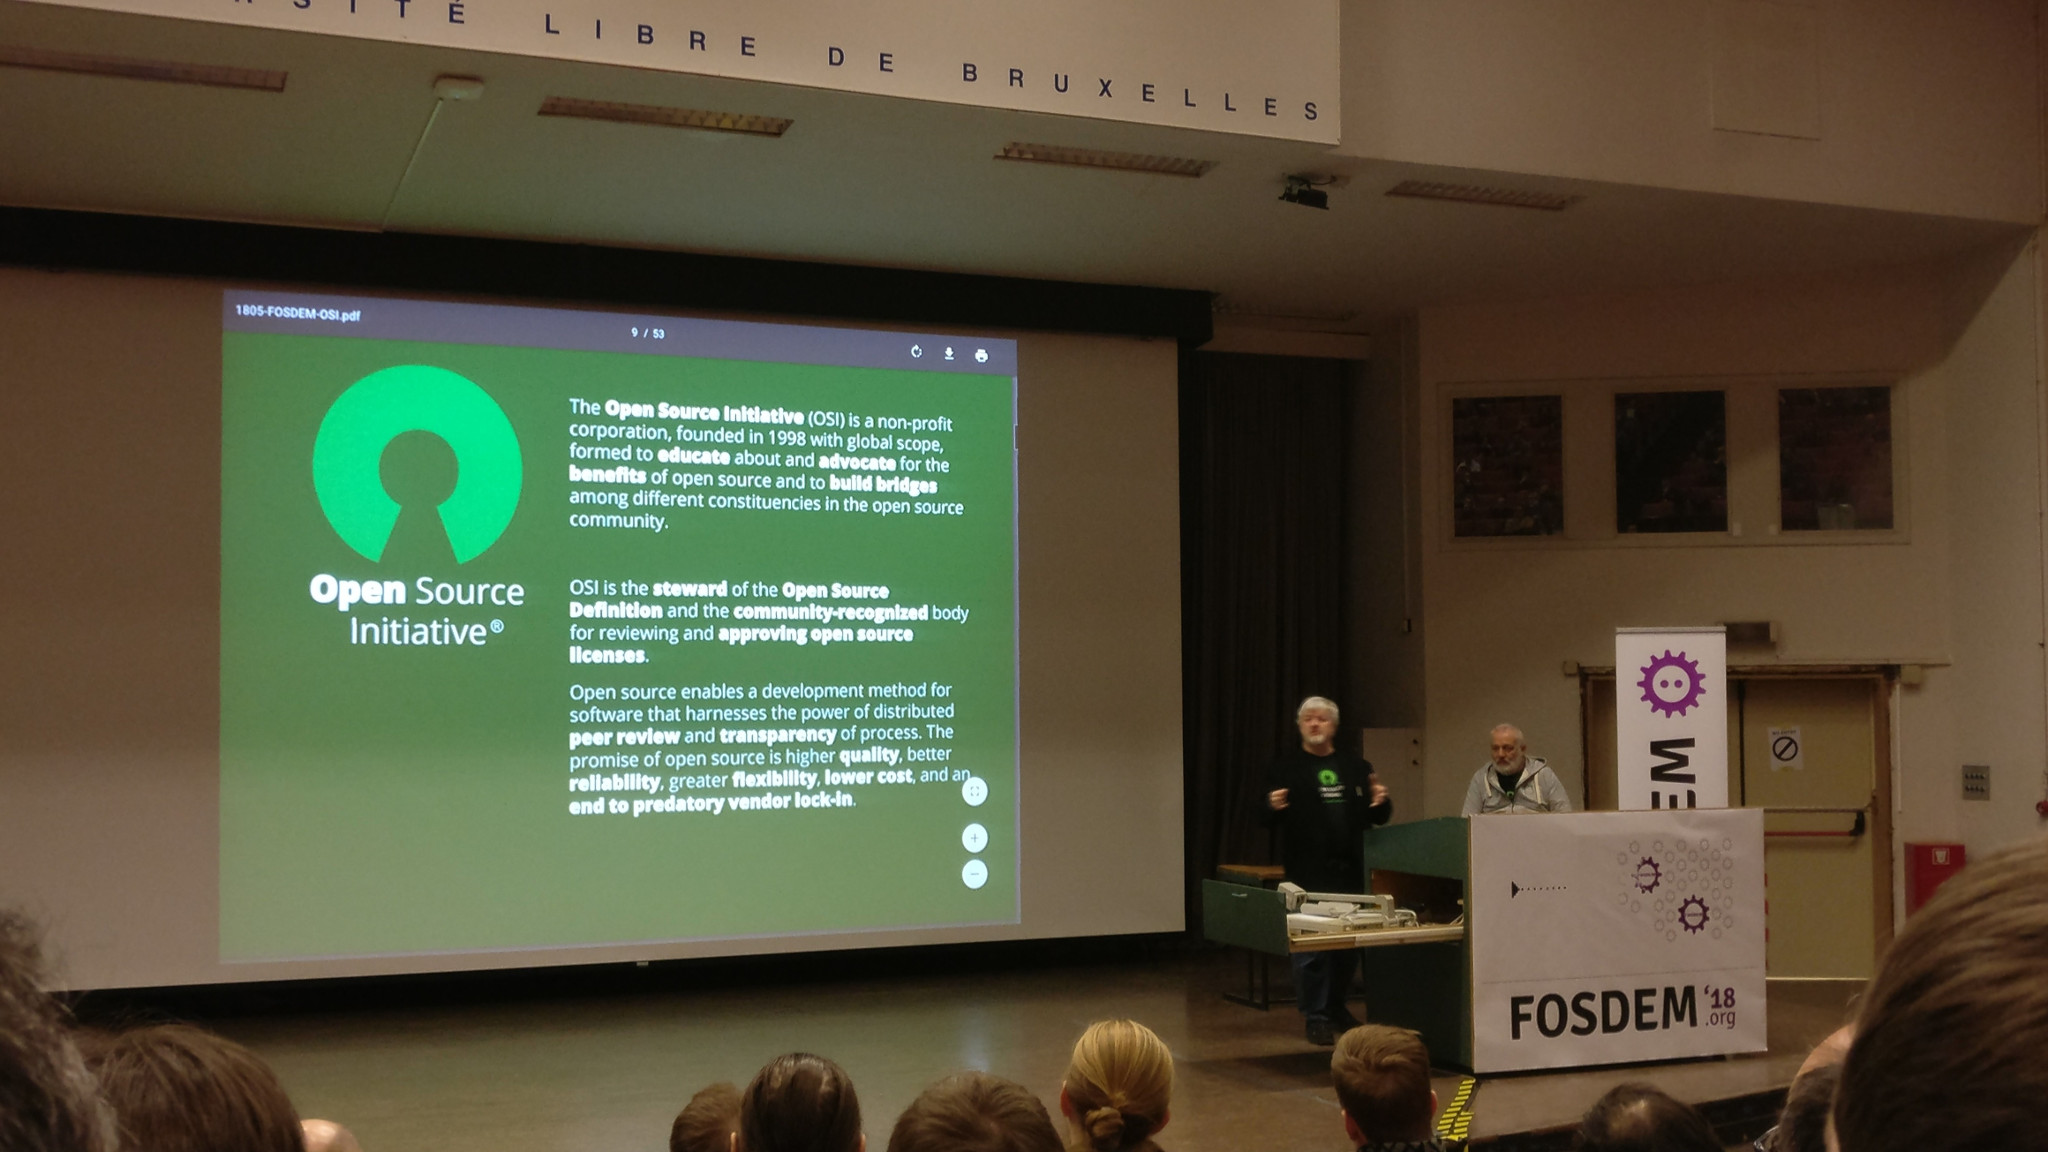 Simon Phipps speaking about the Open Source Initiative (OSI) in FOSDEM 2018